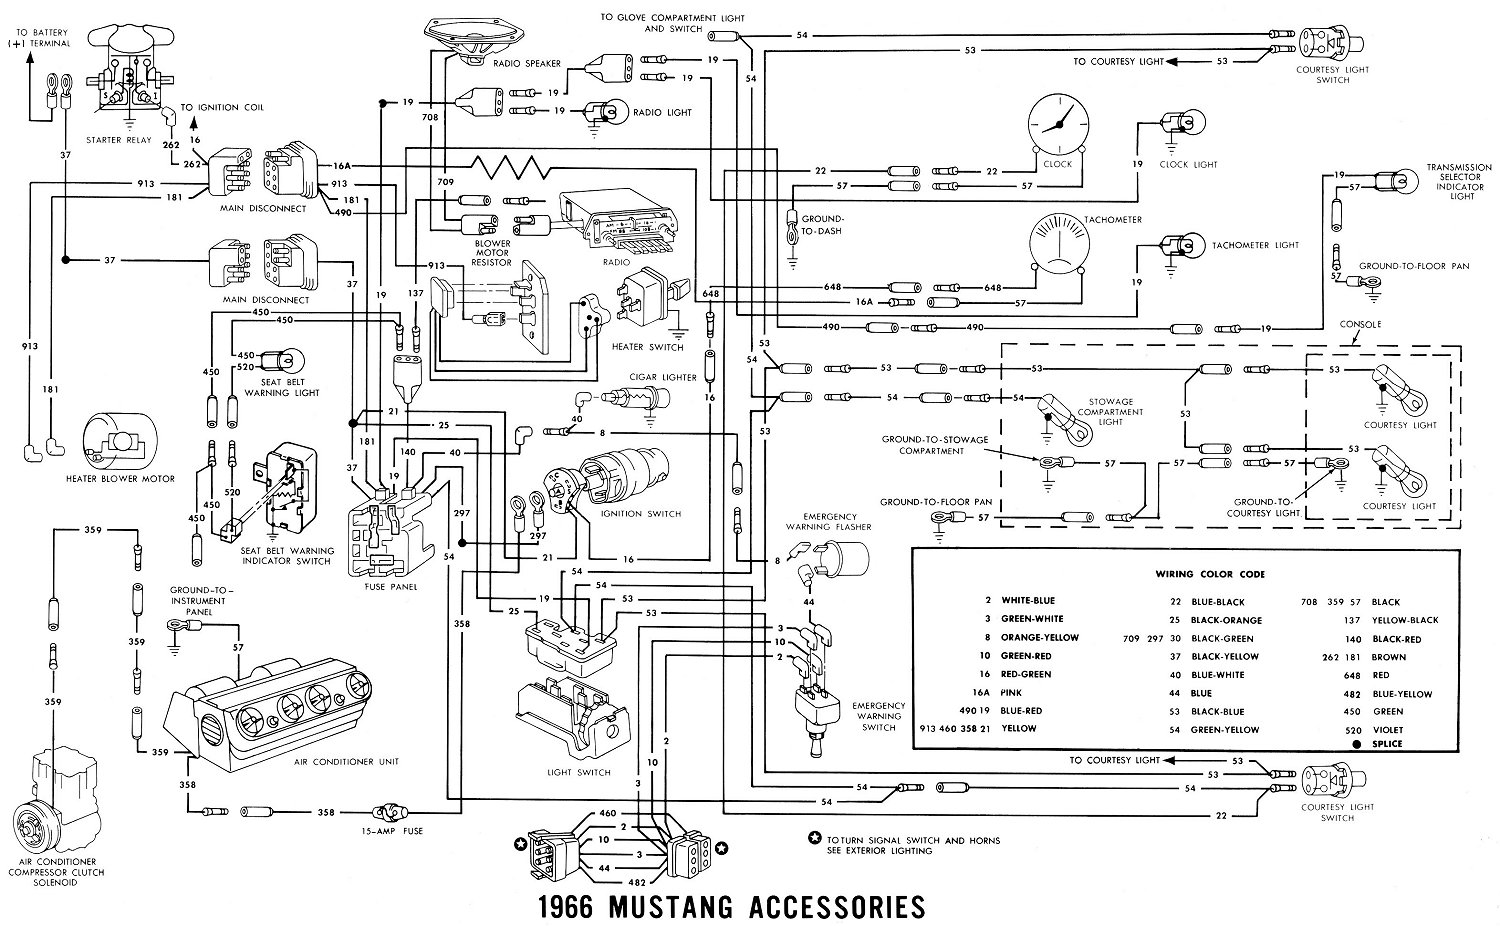 1966 Mustang Wiring Diagrams Average Joe Restoration on wiring diagram